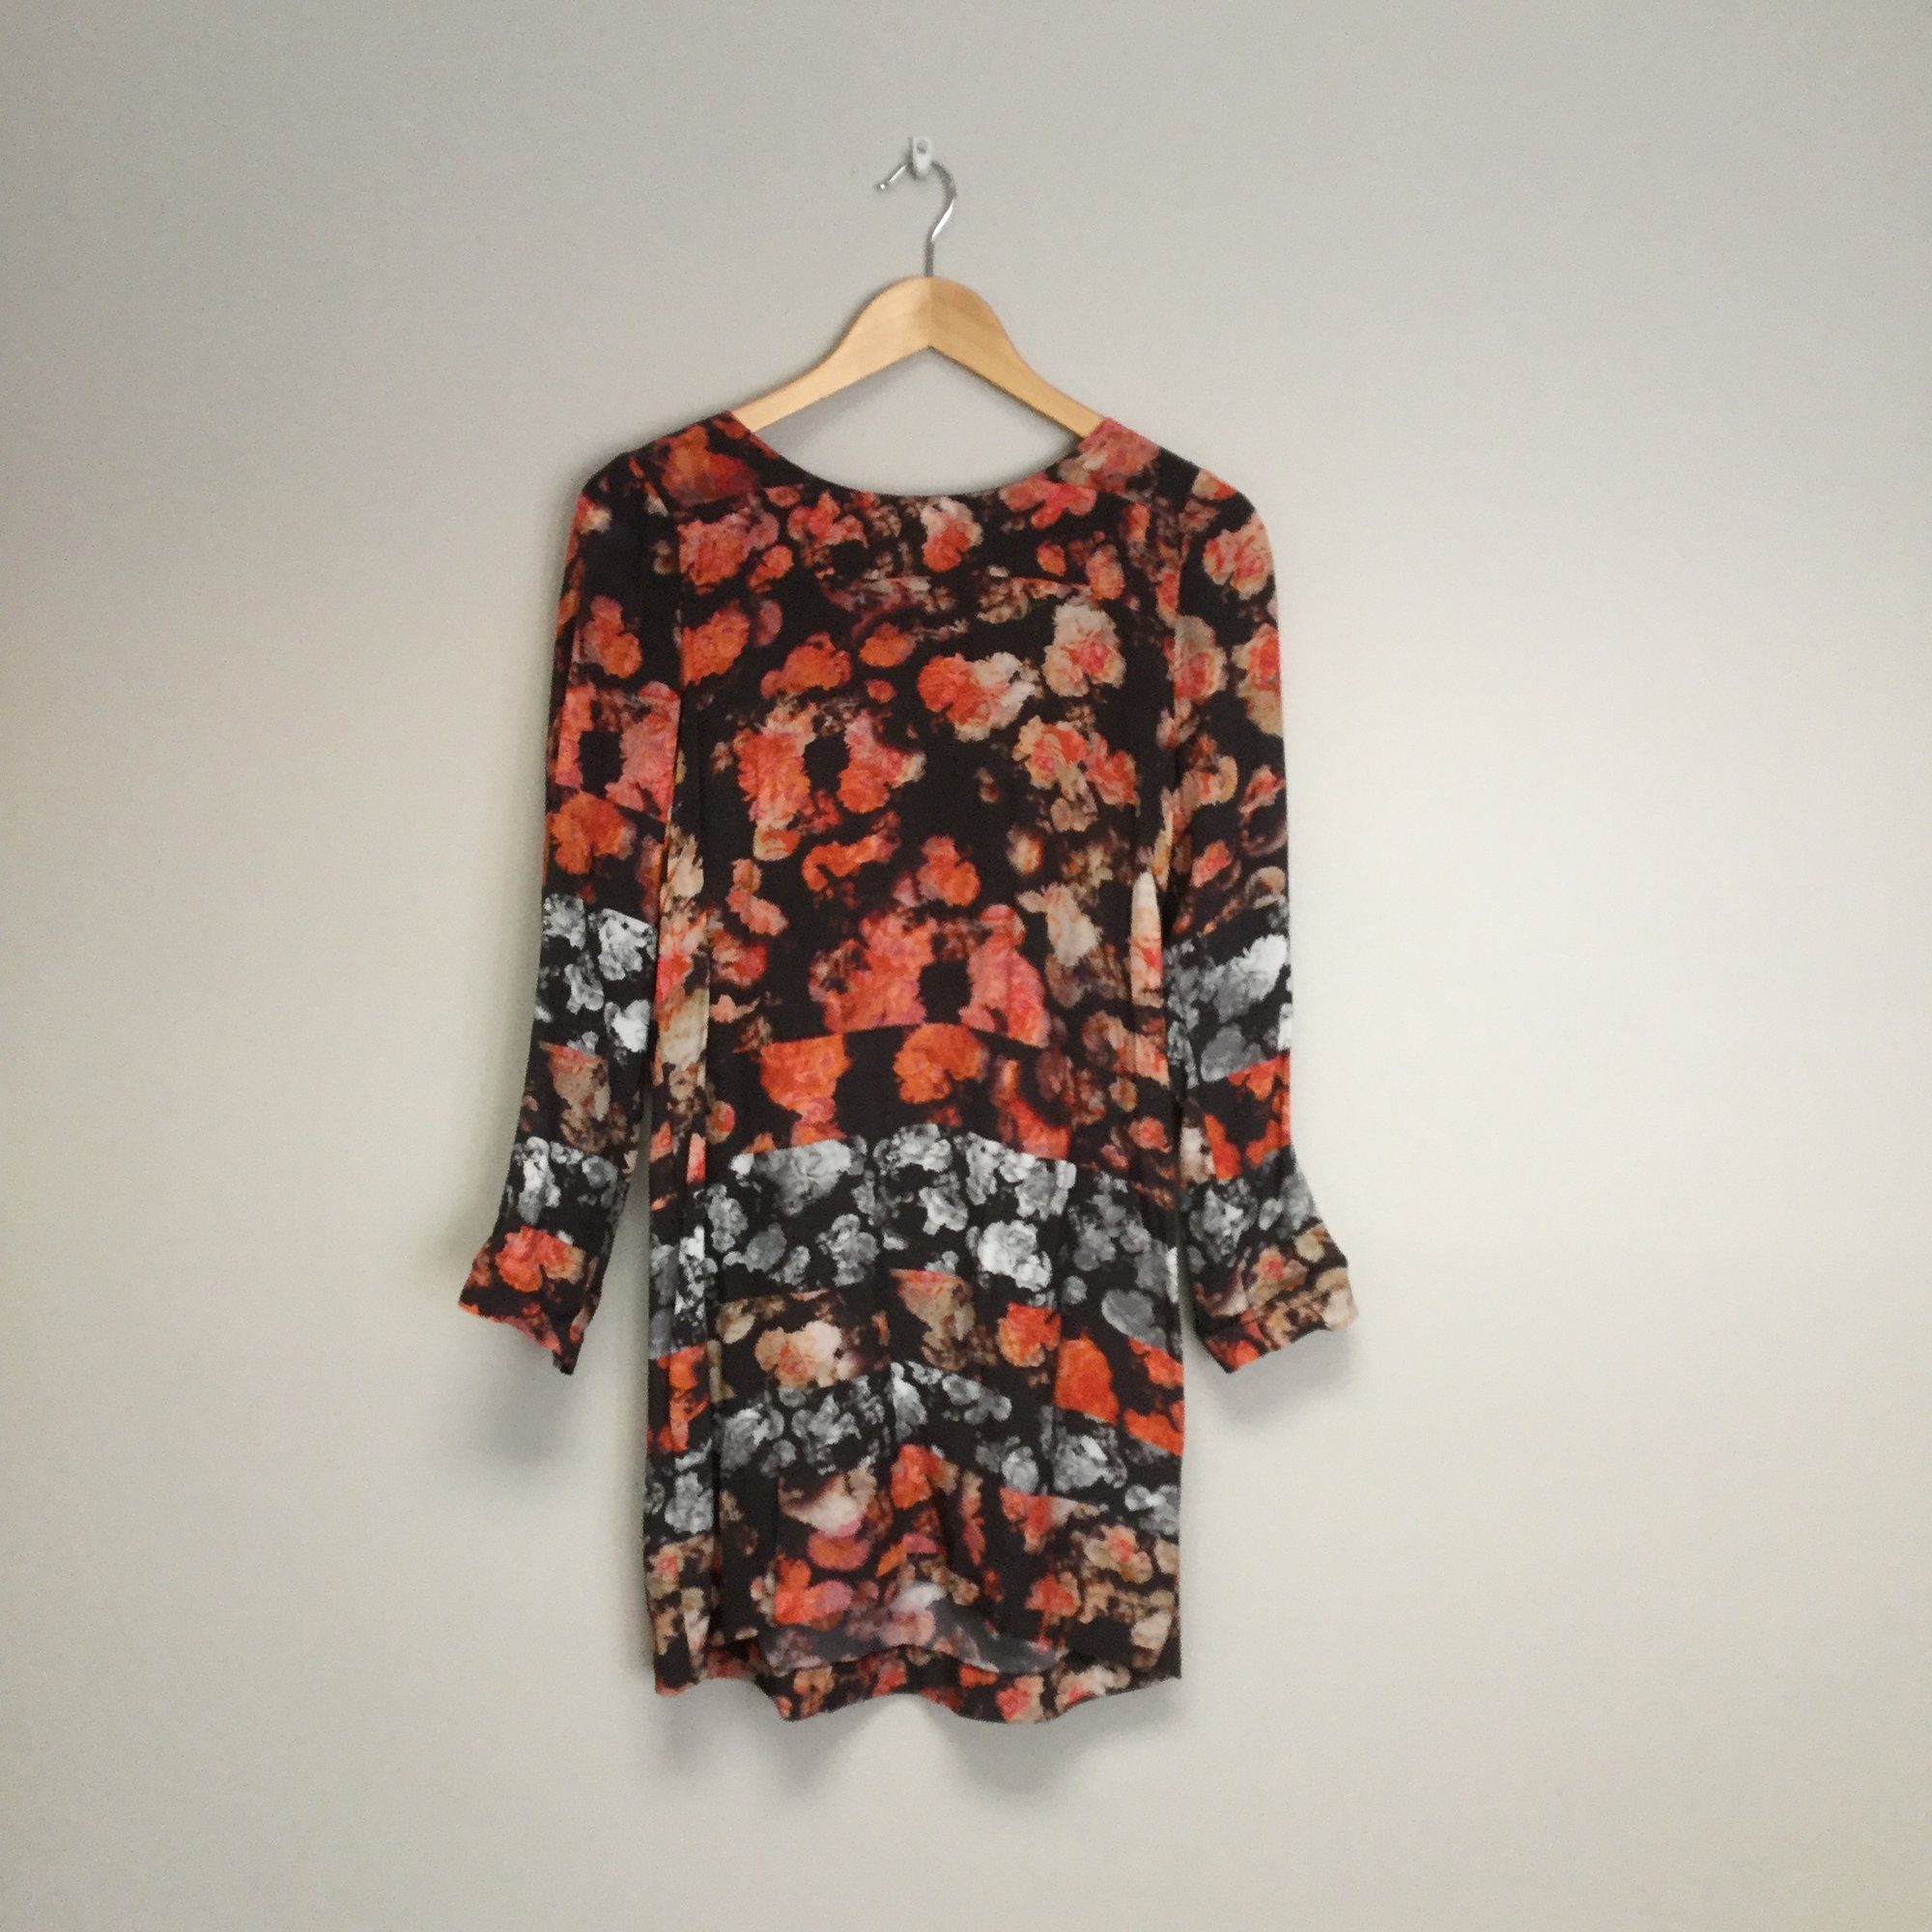 Sam &amp; Lavi Floral Zip Up Back<br /> Size M<br /> Peach/Brown<br /> $56.00